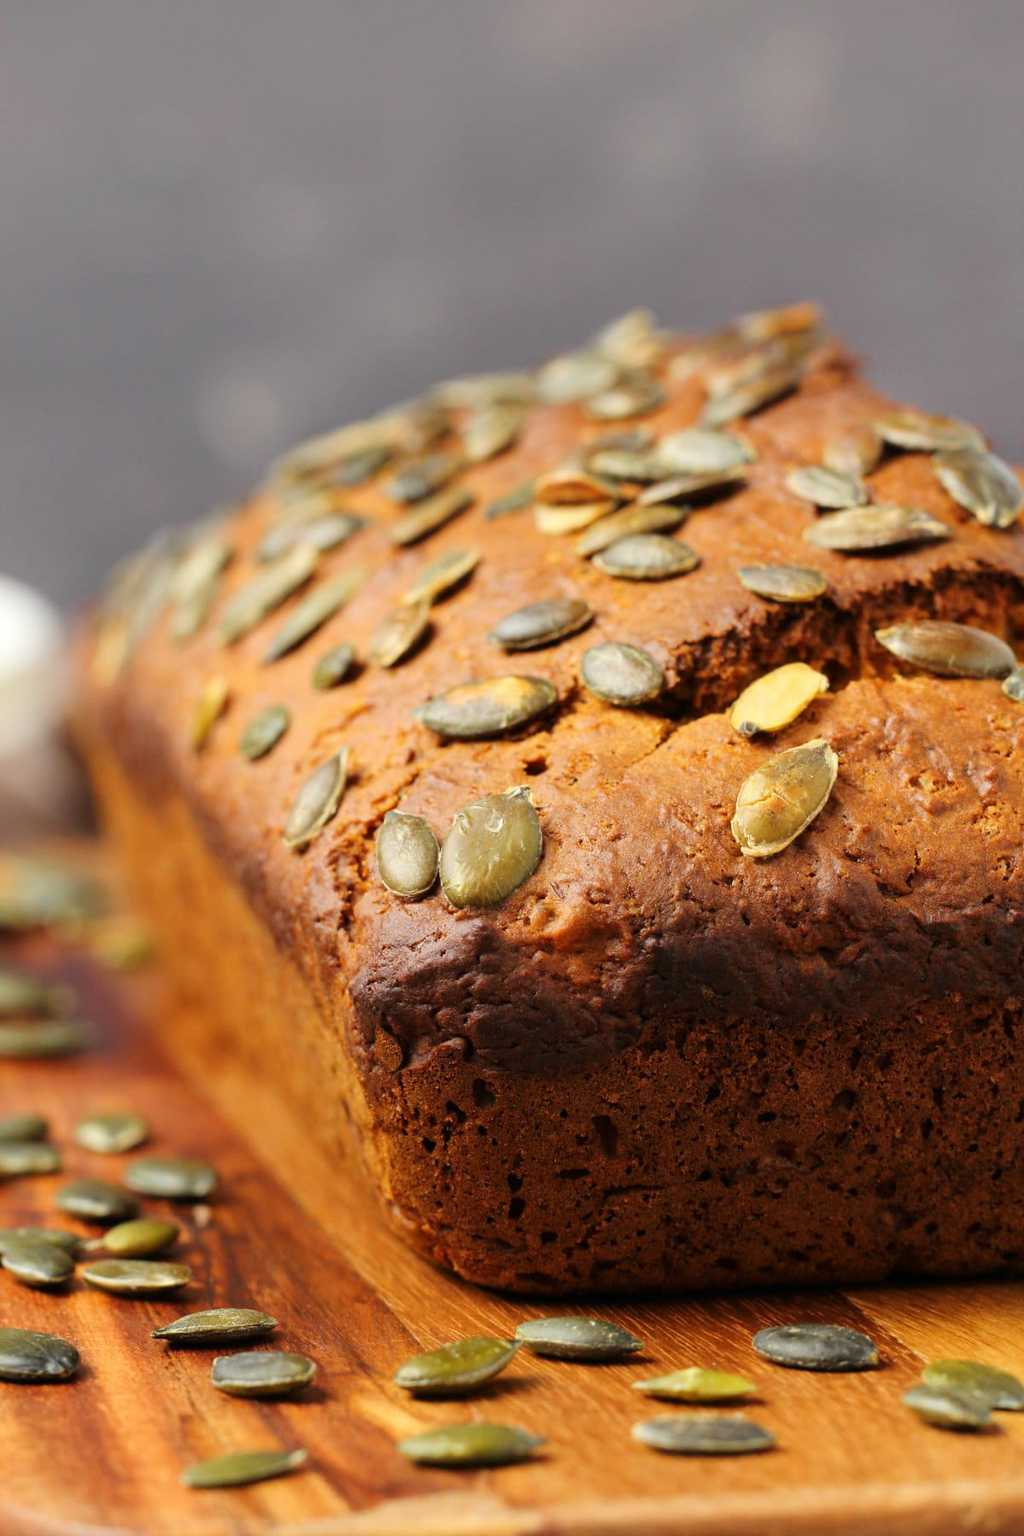 Vegan pumpkin bread topped with pumpkin seeds on a wooden board.